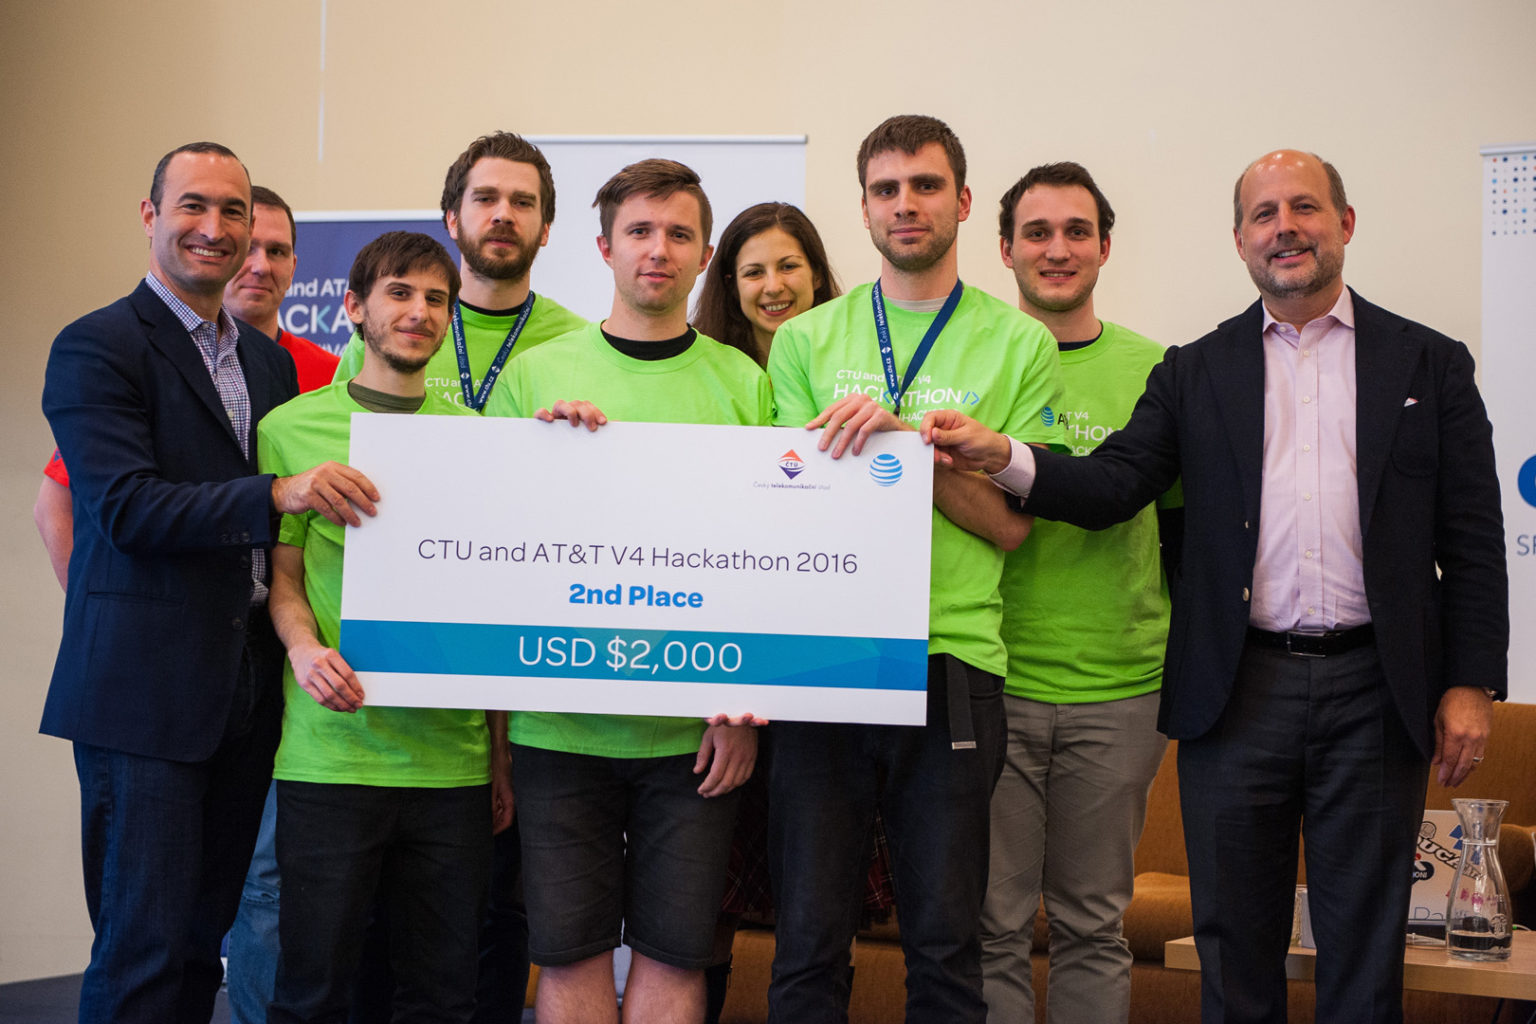 V4 Hackathon Prague 2016 winners 2nd place